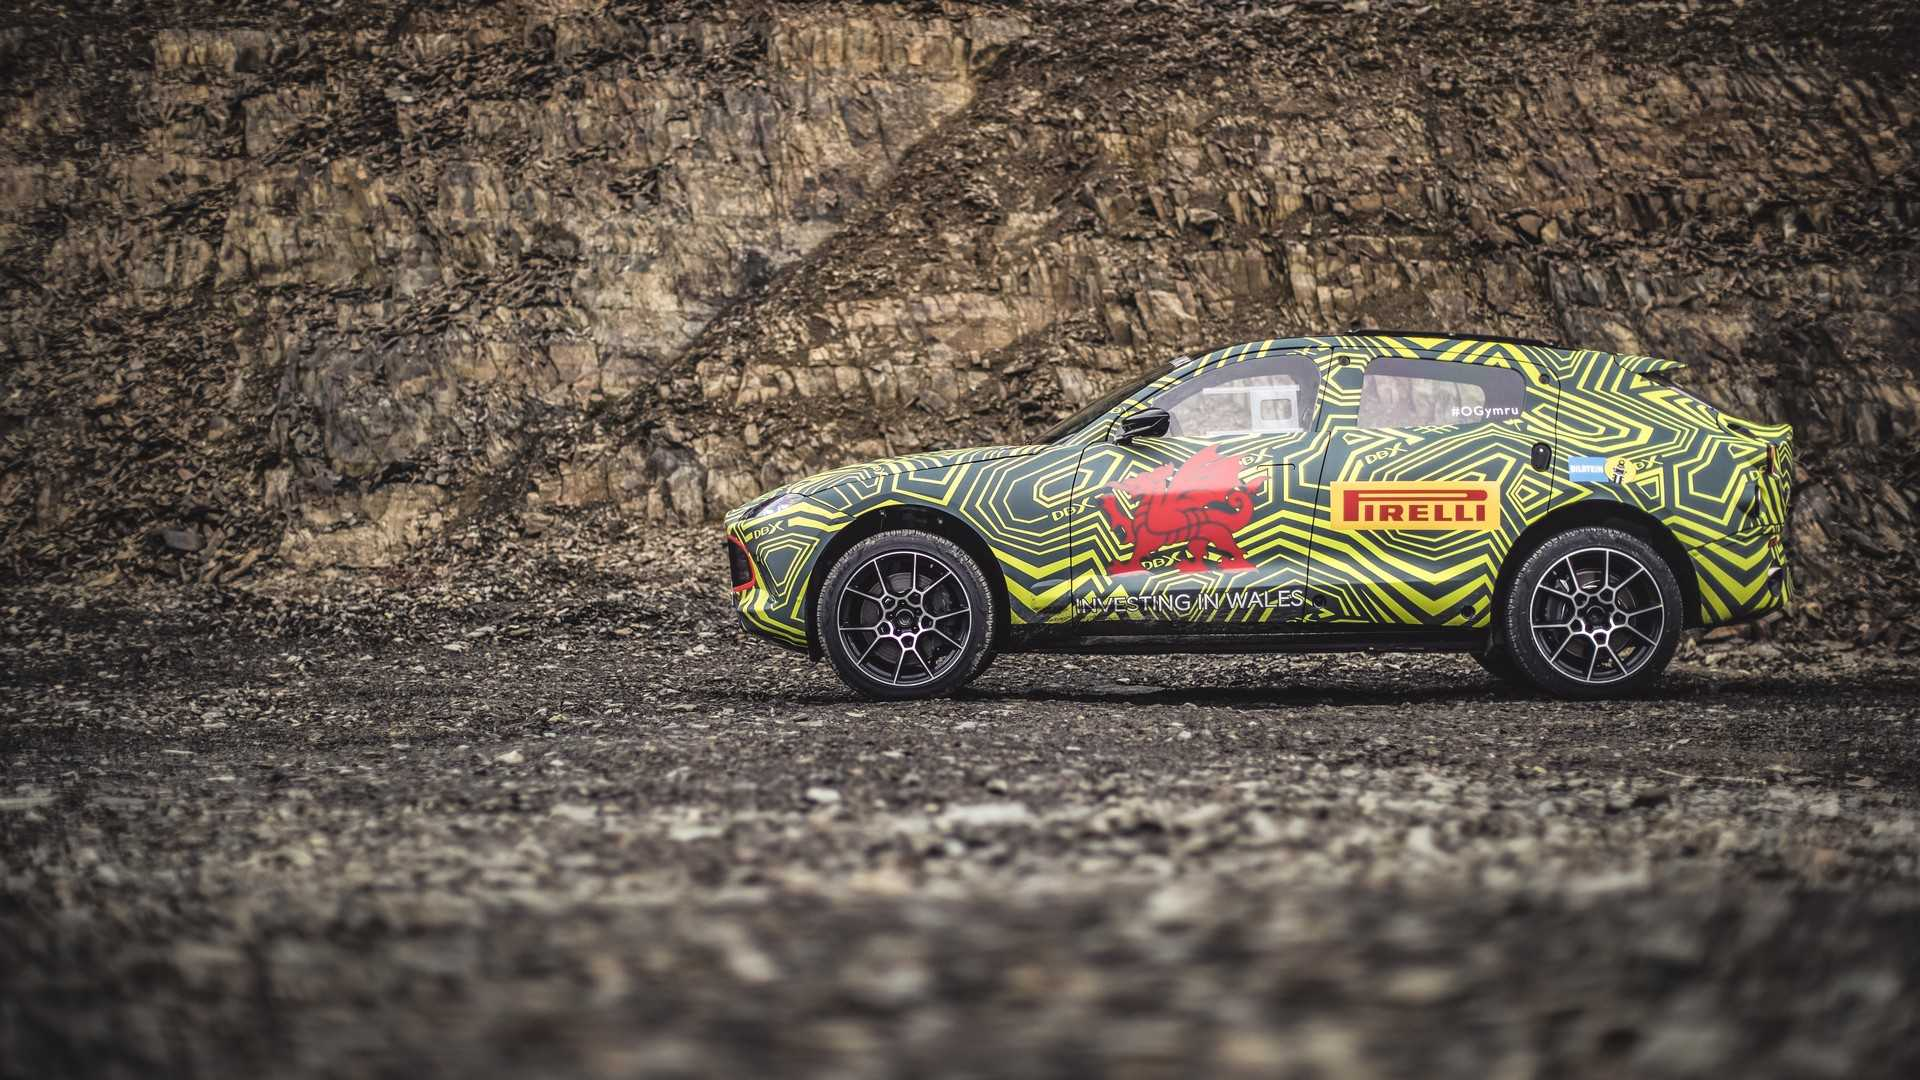 Aston Martin's debut SUV gets unleashed for testing